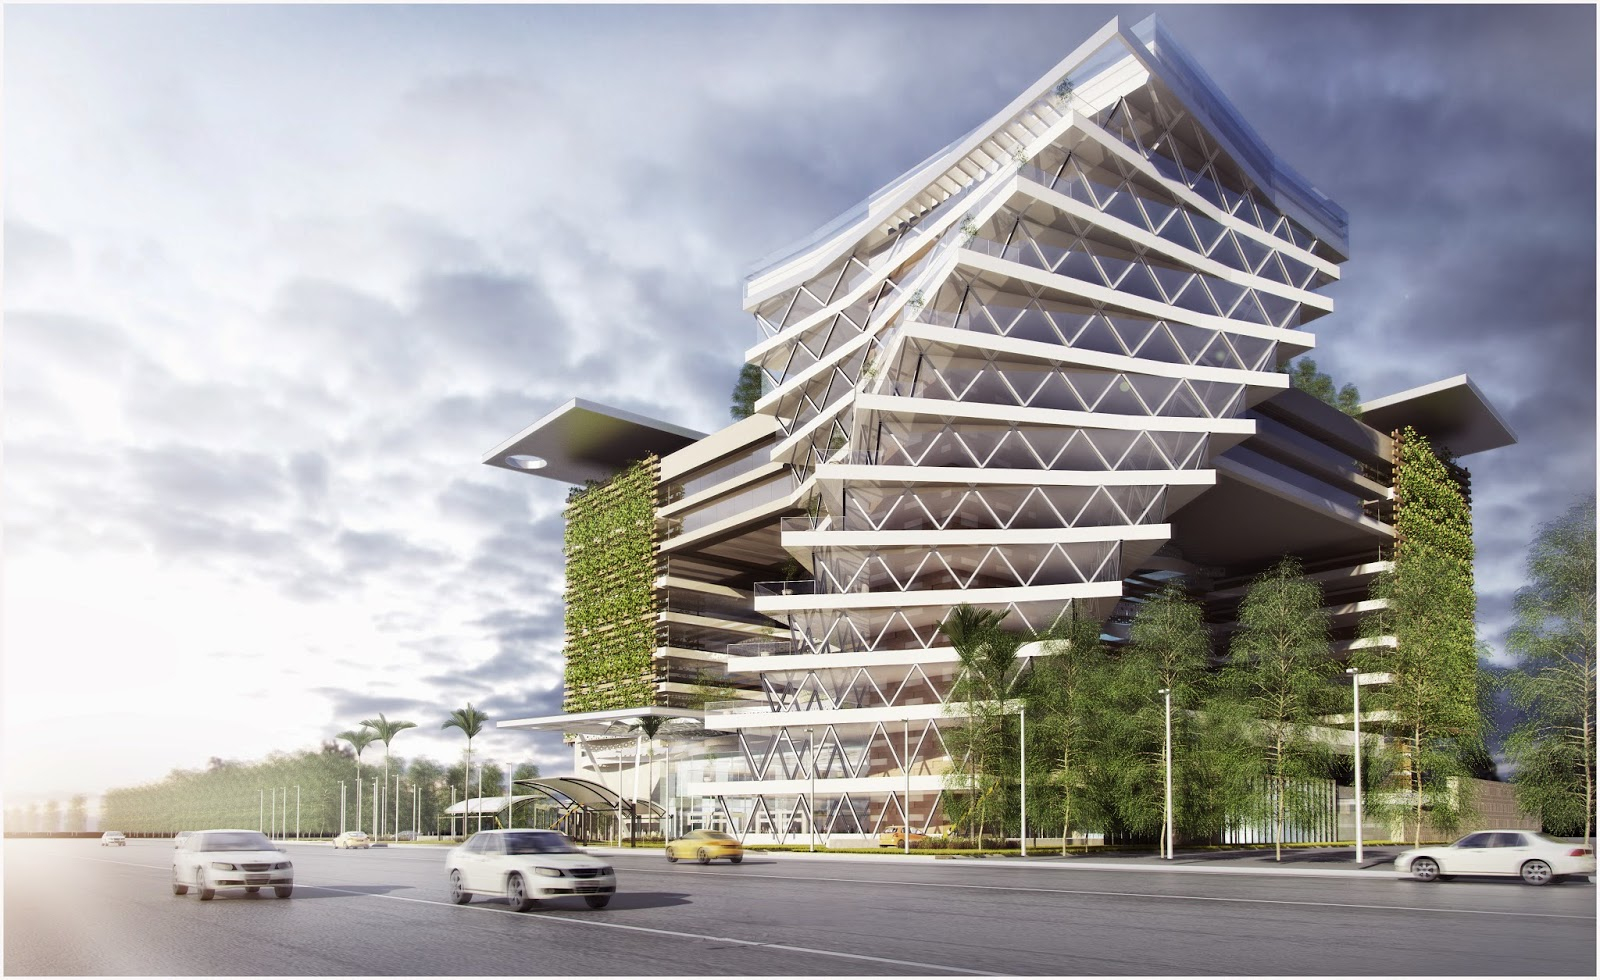 Office Building - Exterior Perspective - Day Light - V Ray Physical ...